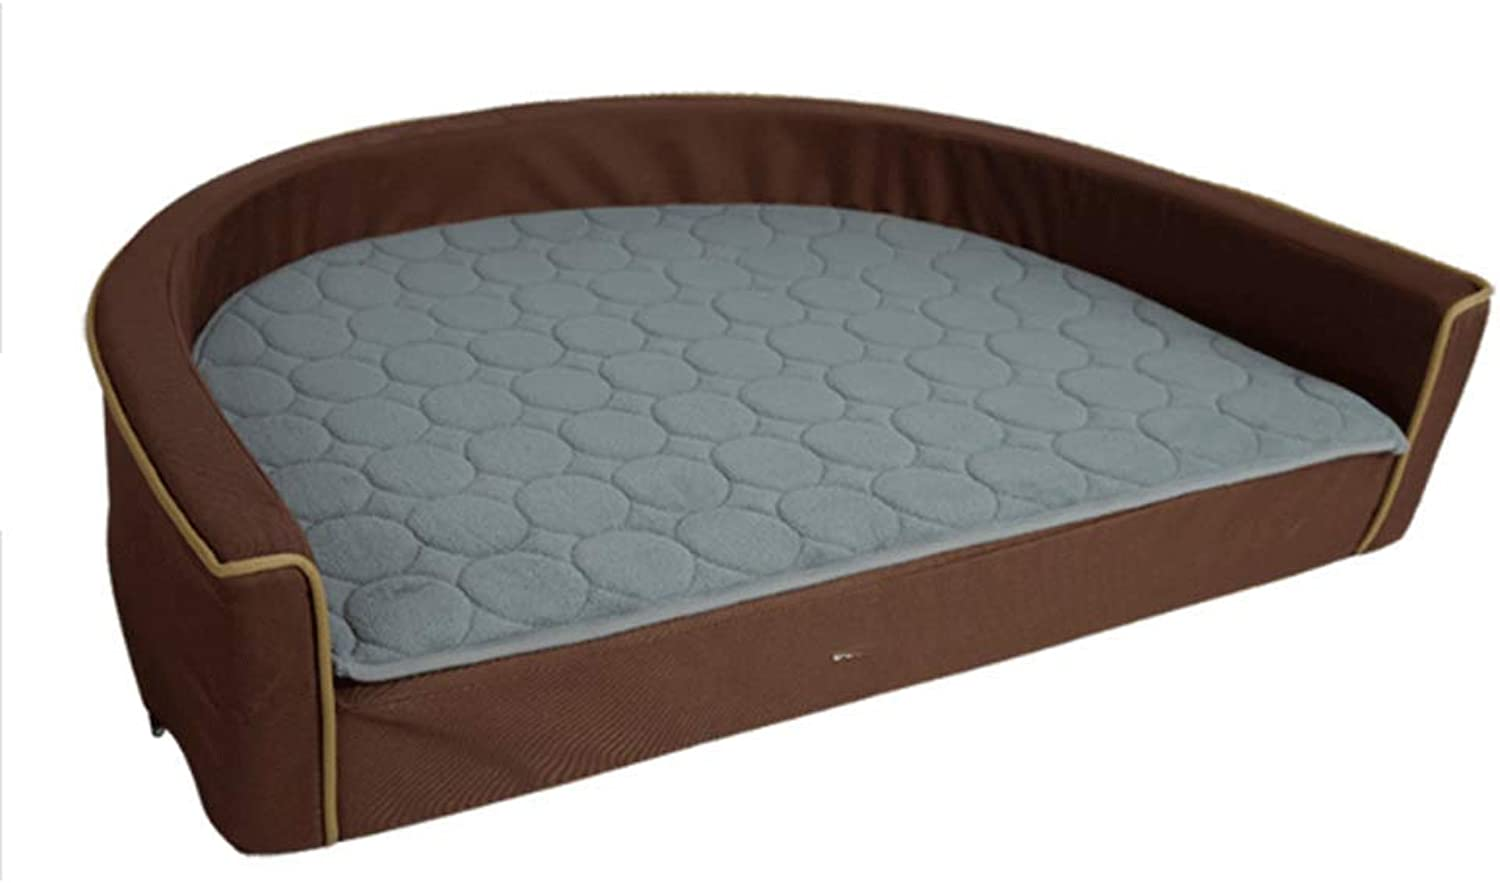 AIDELAI Kennel Removable And Washable Dog Bed Teddy golden Retriever Pet Nest Sofa Mattress Dog Supplies (color   BROWN, Size   60×44×12cm)